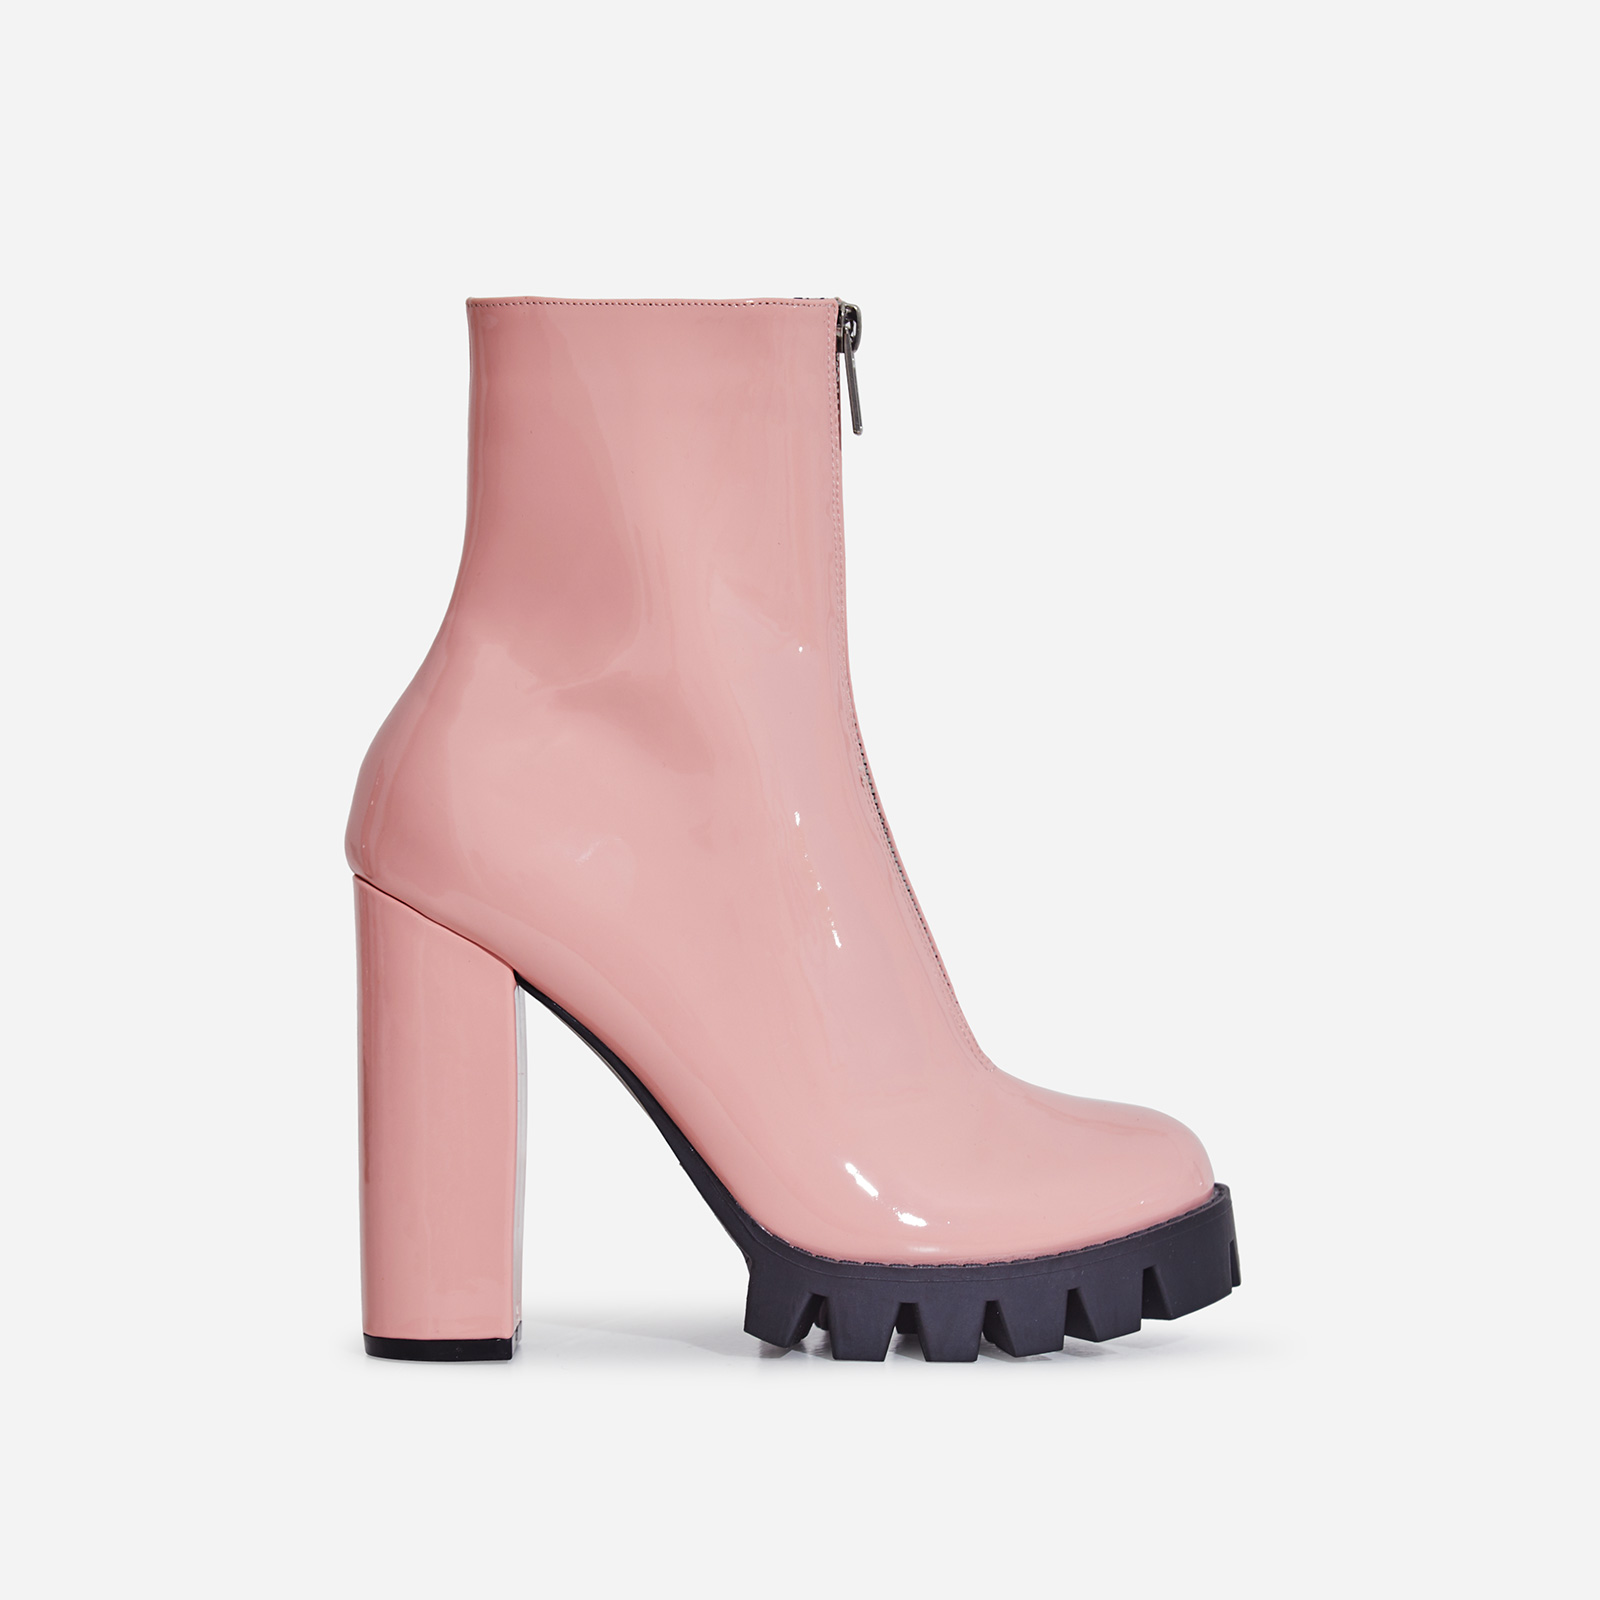 Mamba Zip Detail Cleated Sole Ankle Boot In Pink Patent